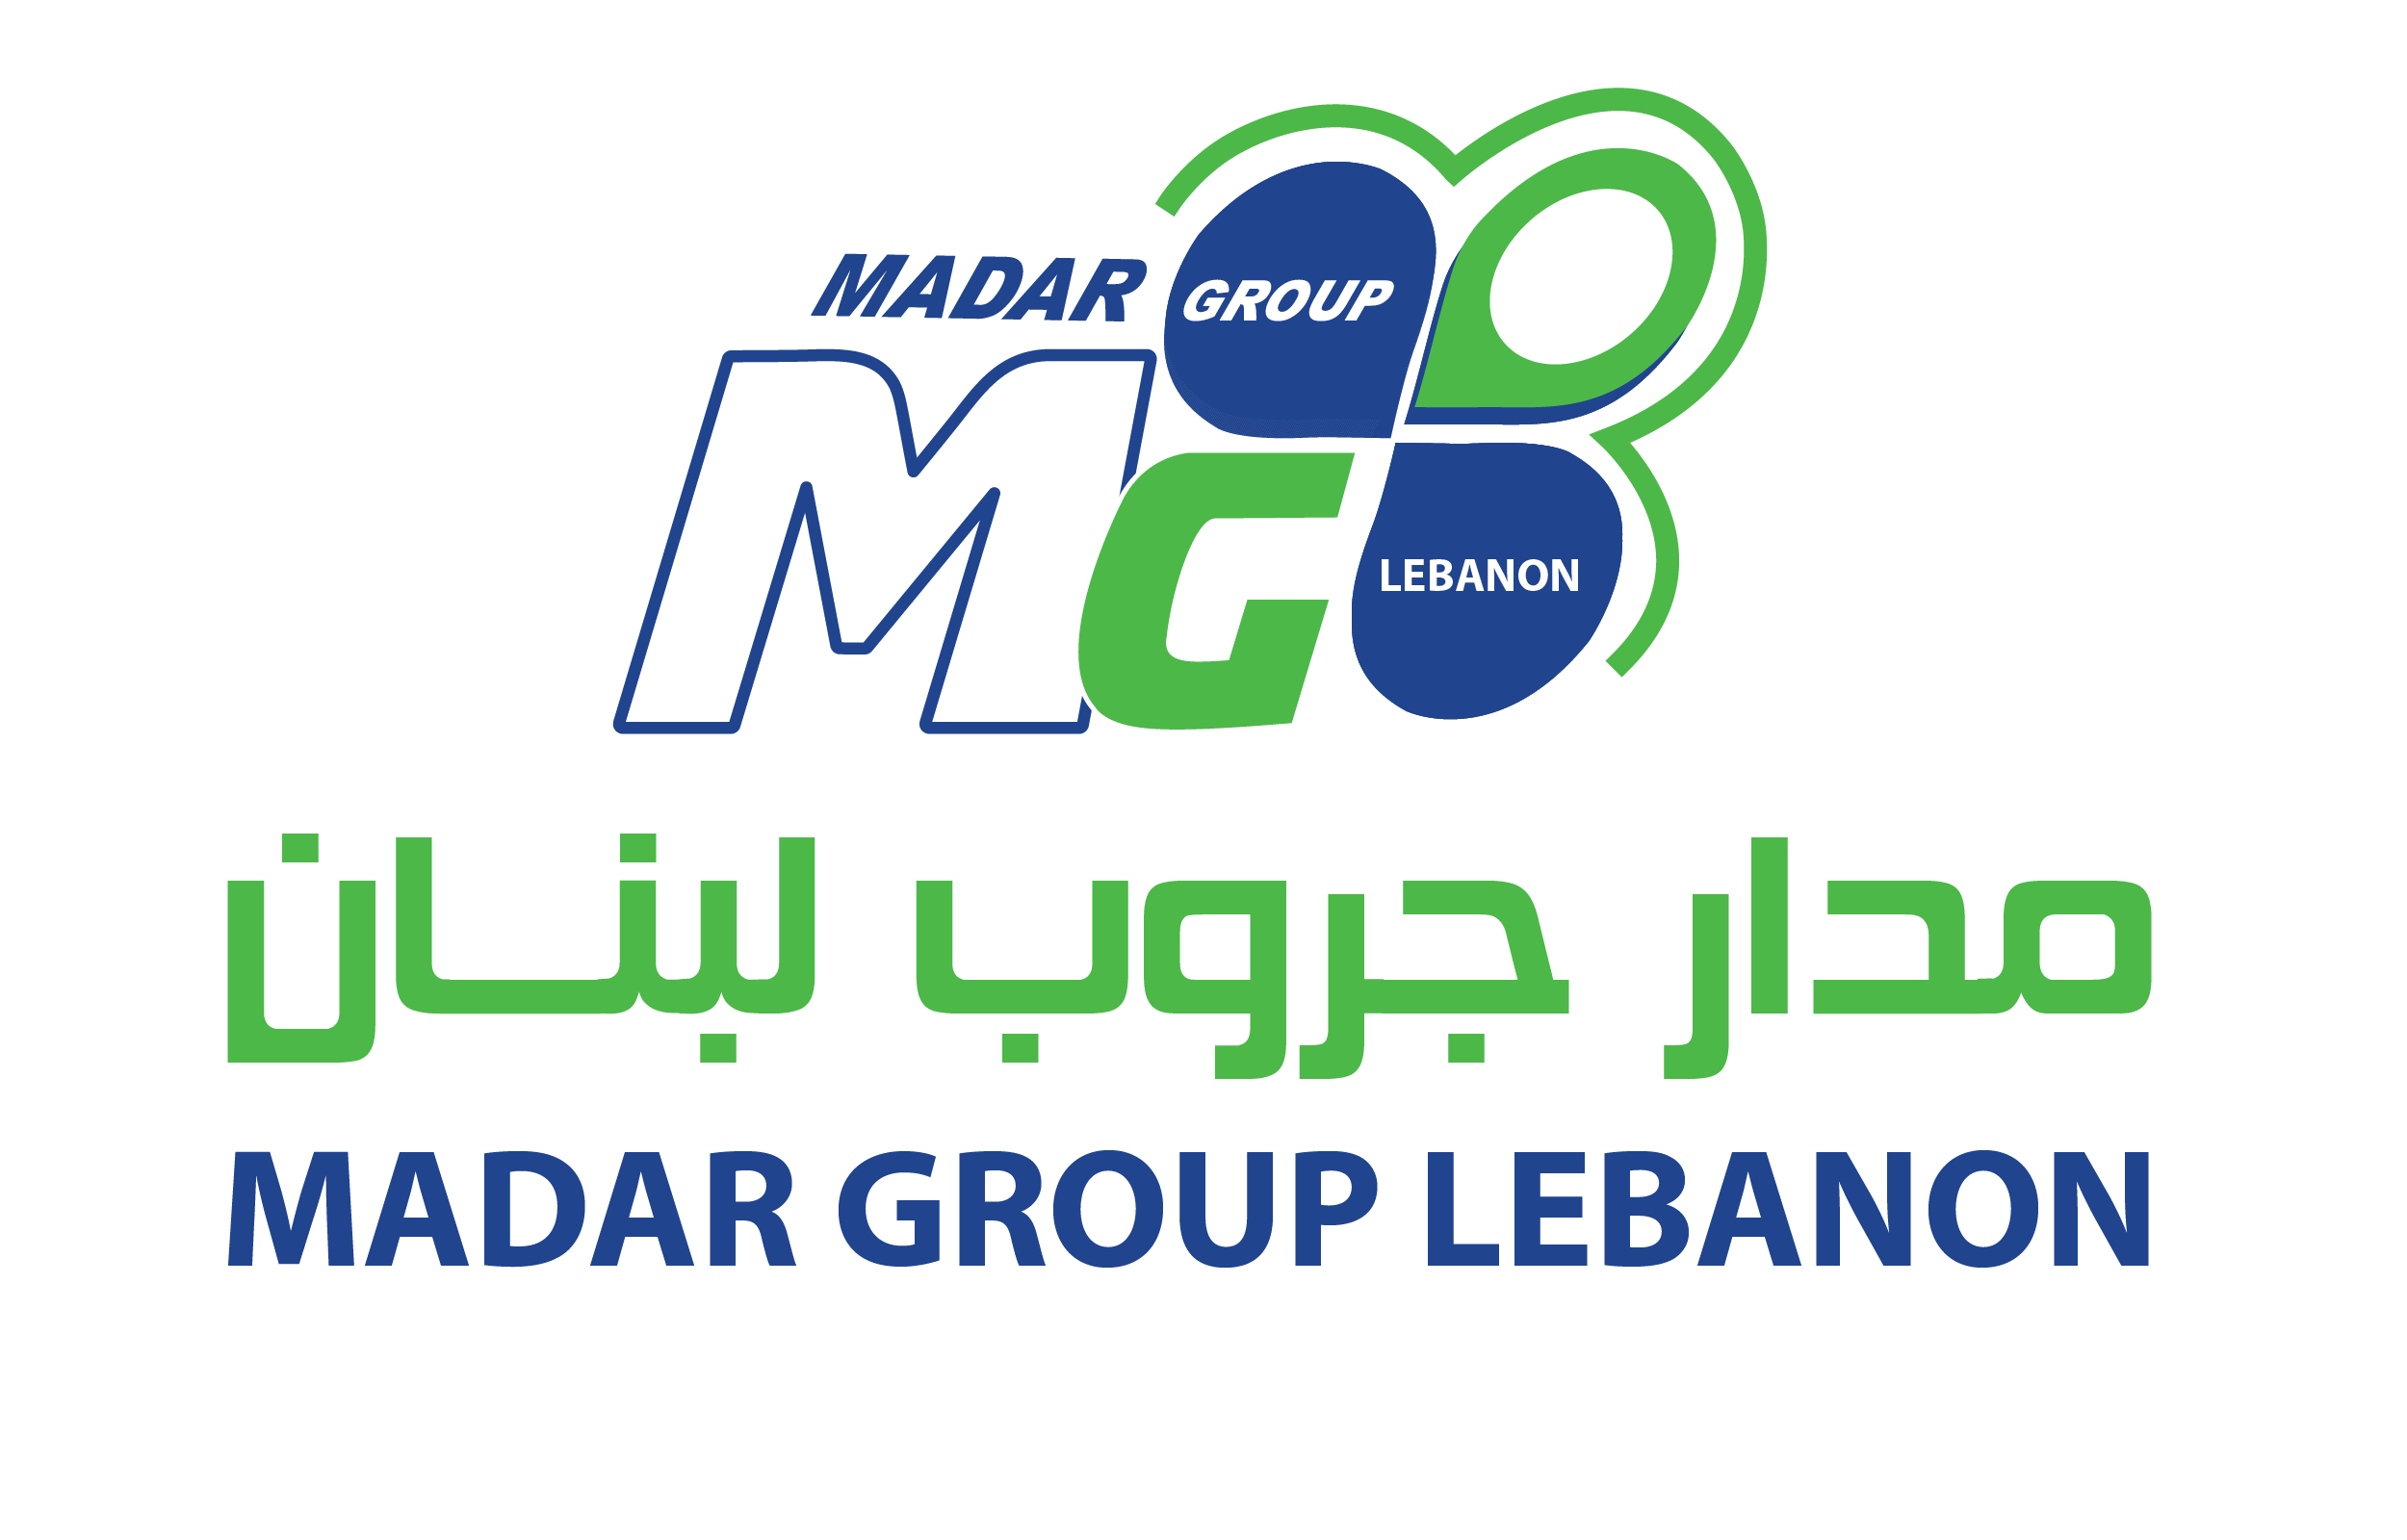 Madar Lebanon, The company has made a great success in the FMCG market in Lebanon within few months.